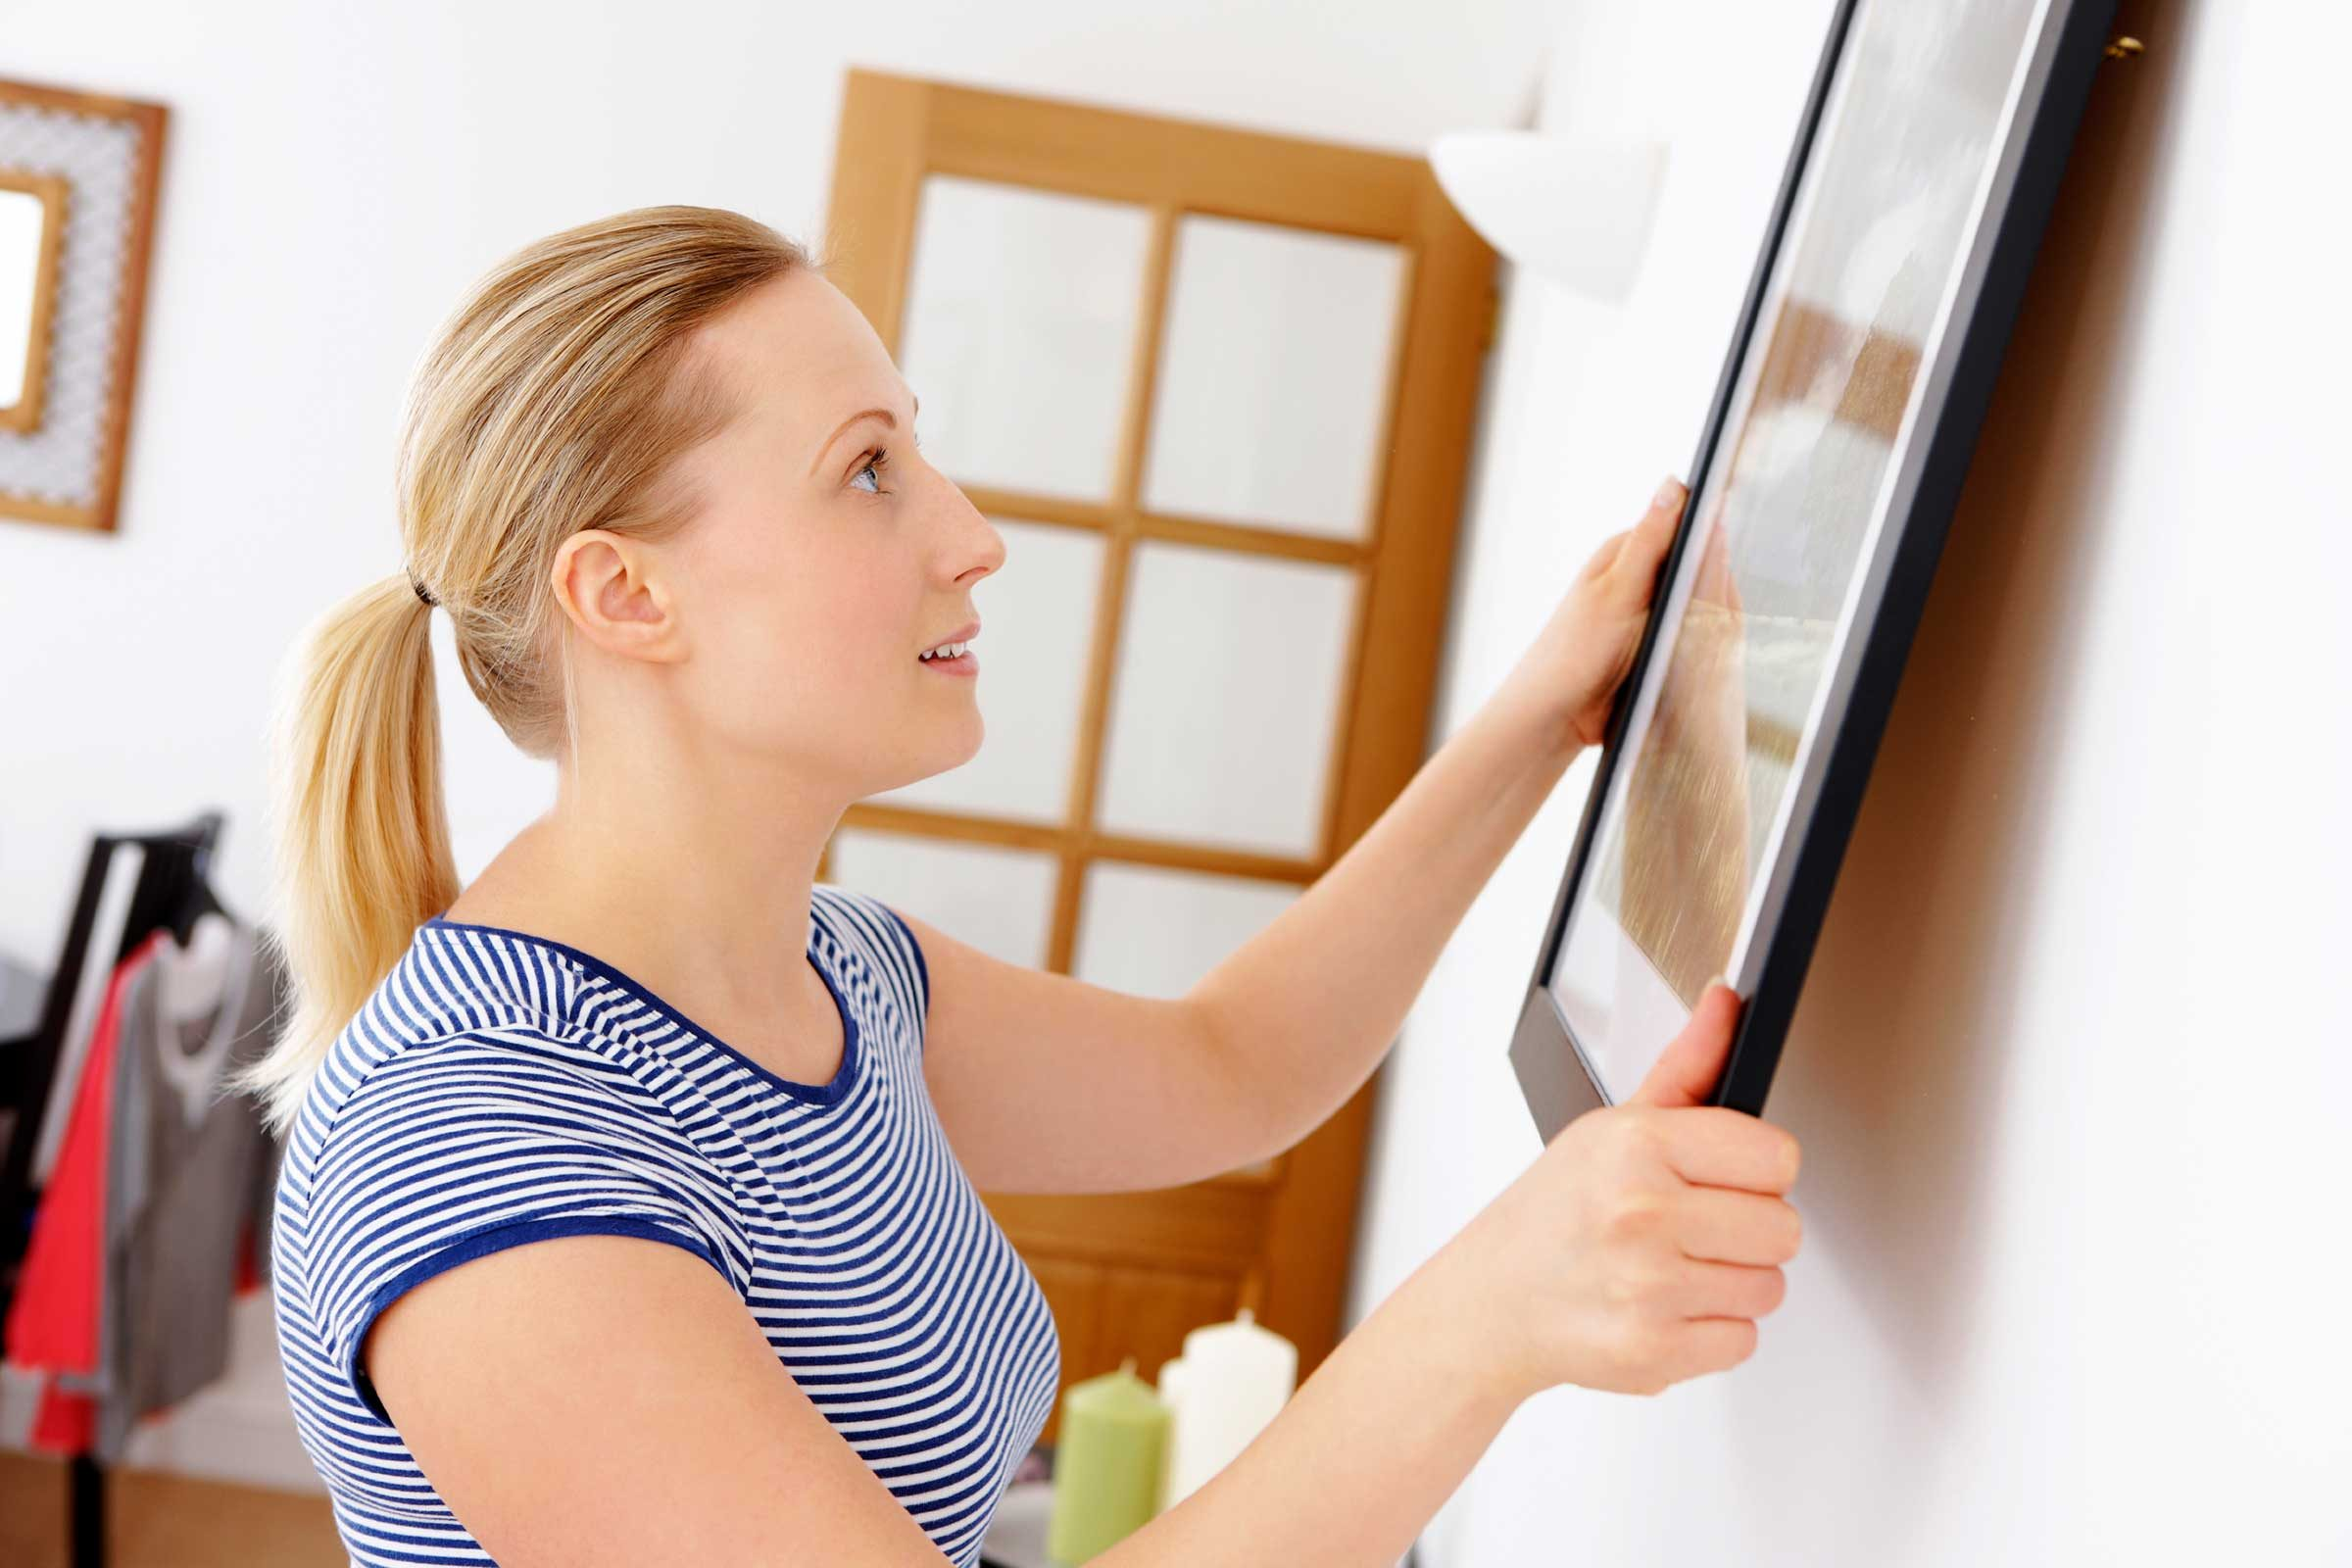 How to Hang Pictures Perfectly: 9 Common Mistakes to Avoid